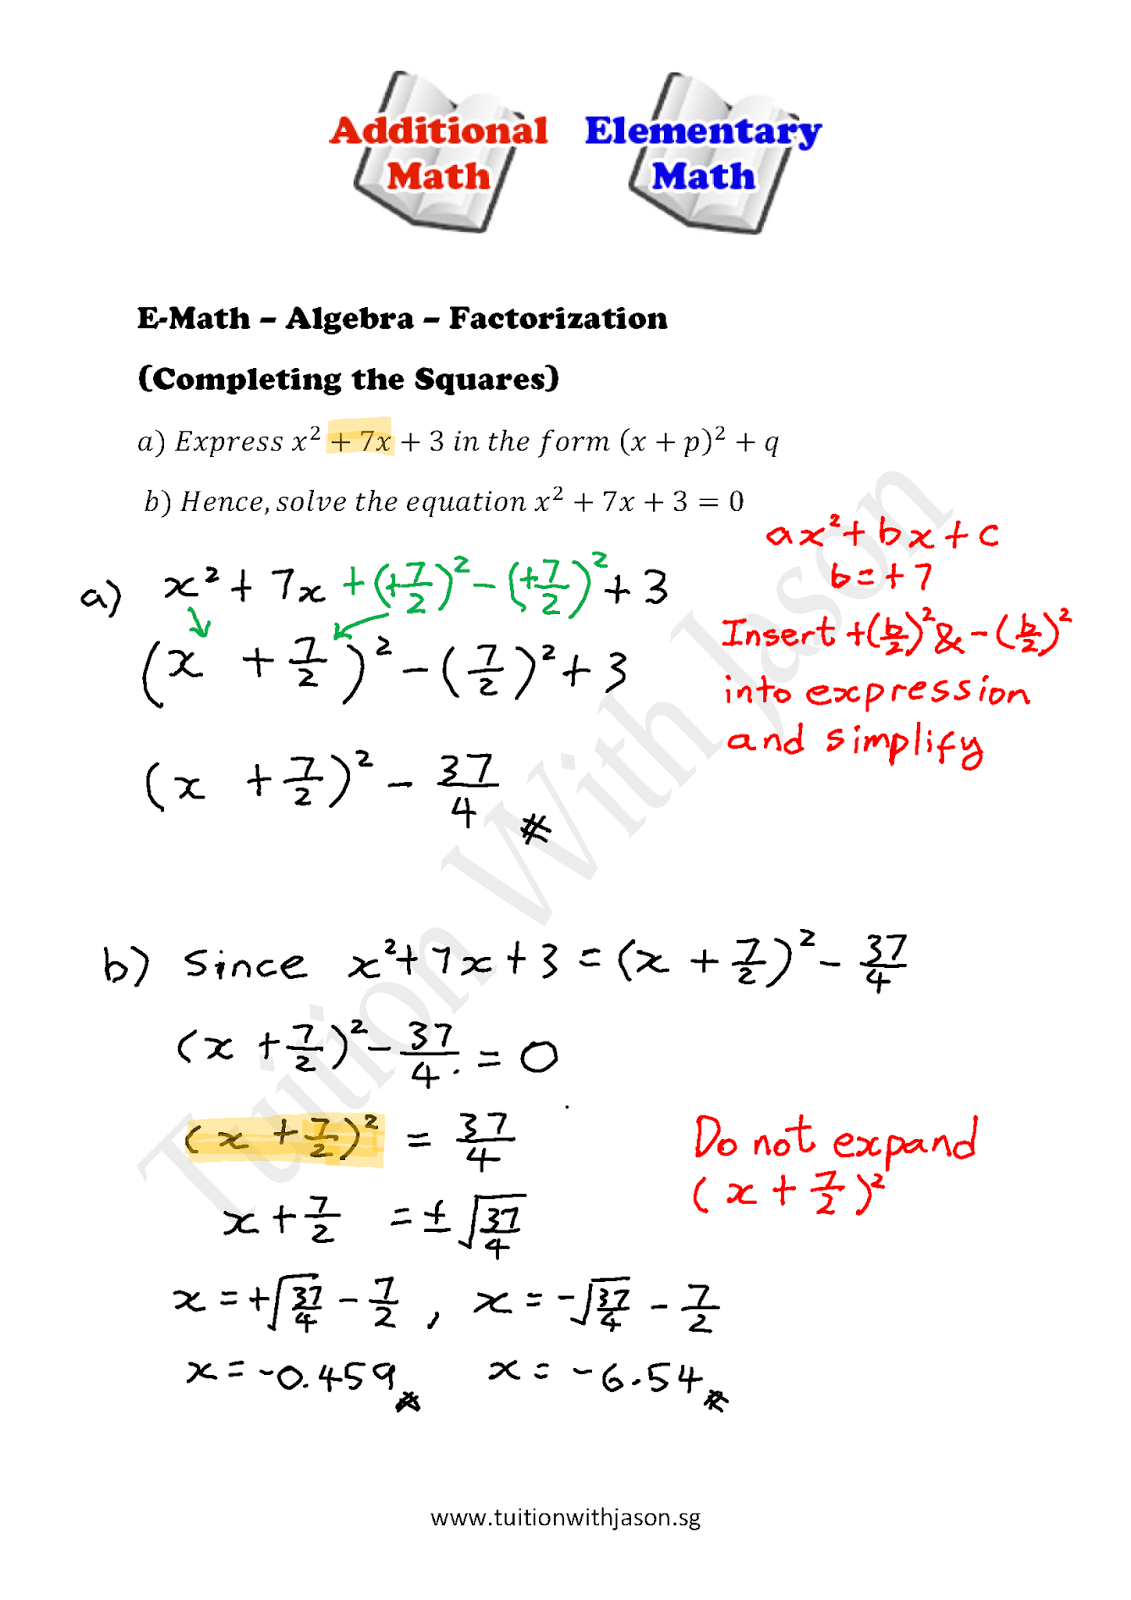 worksheet Factorization e math algebra factorization completing the squares squares